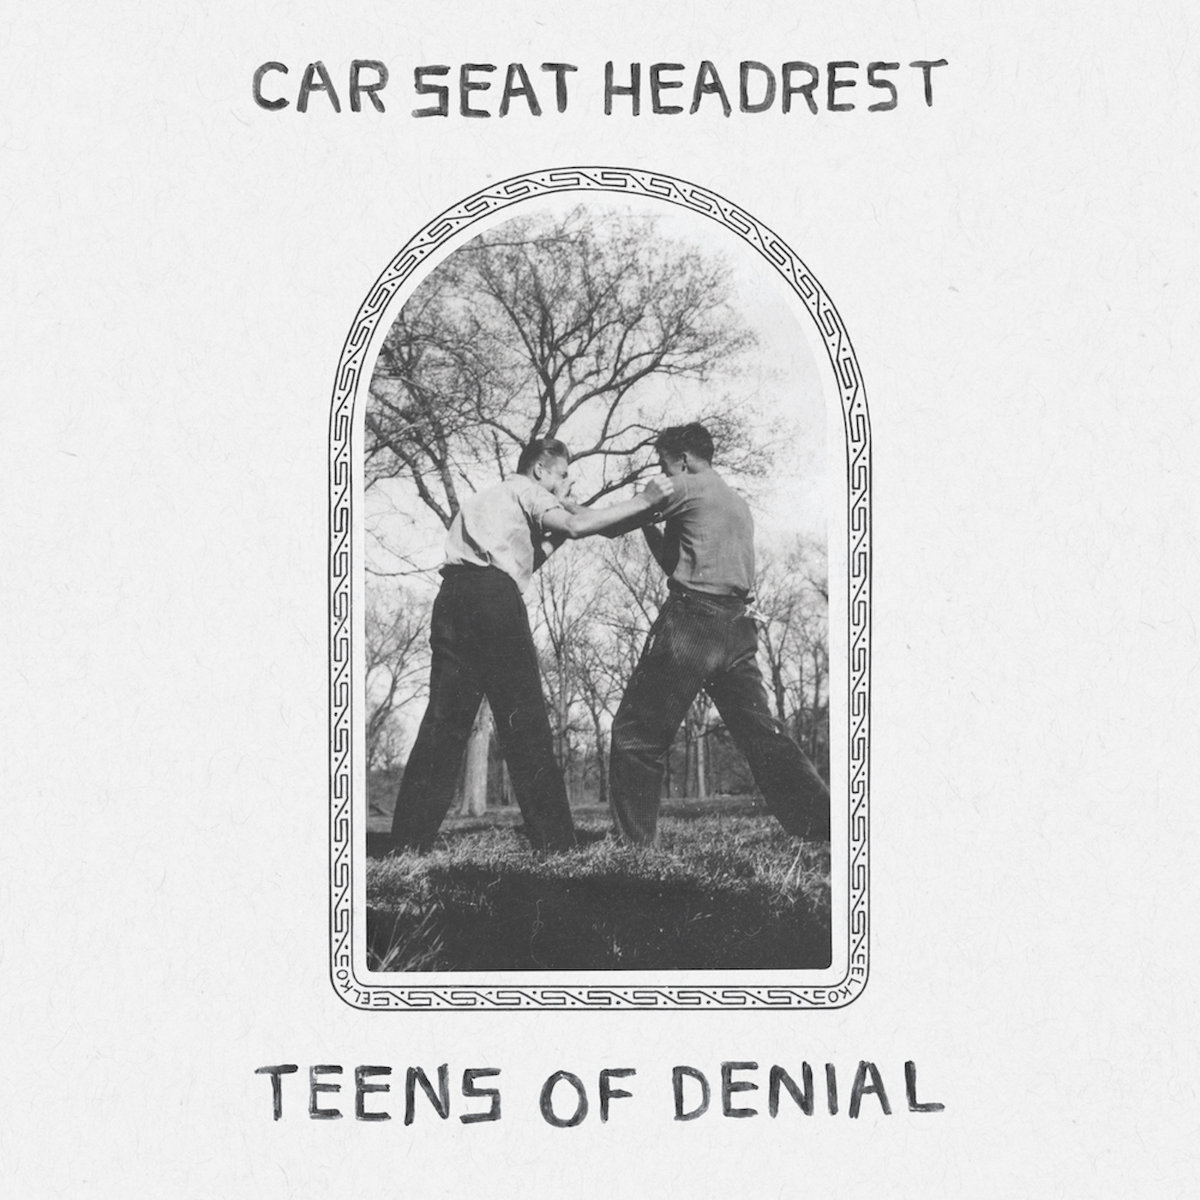 Fill In The Blank From Teens Of Denial By Car Seat Headrest